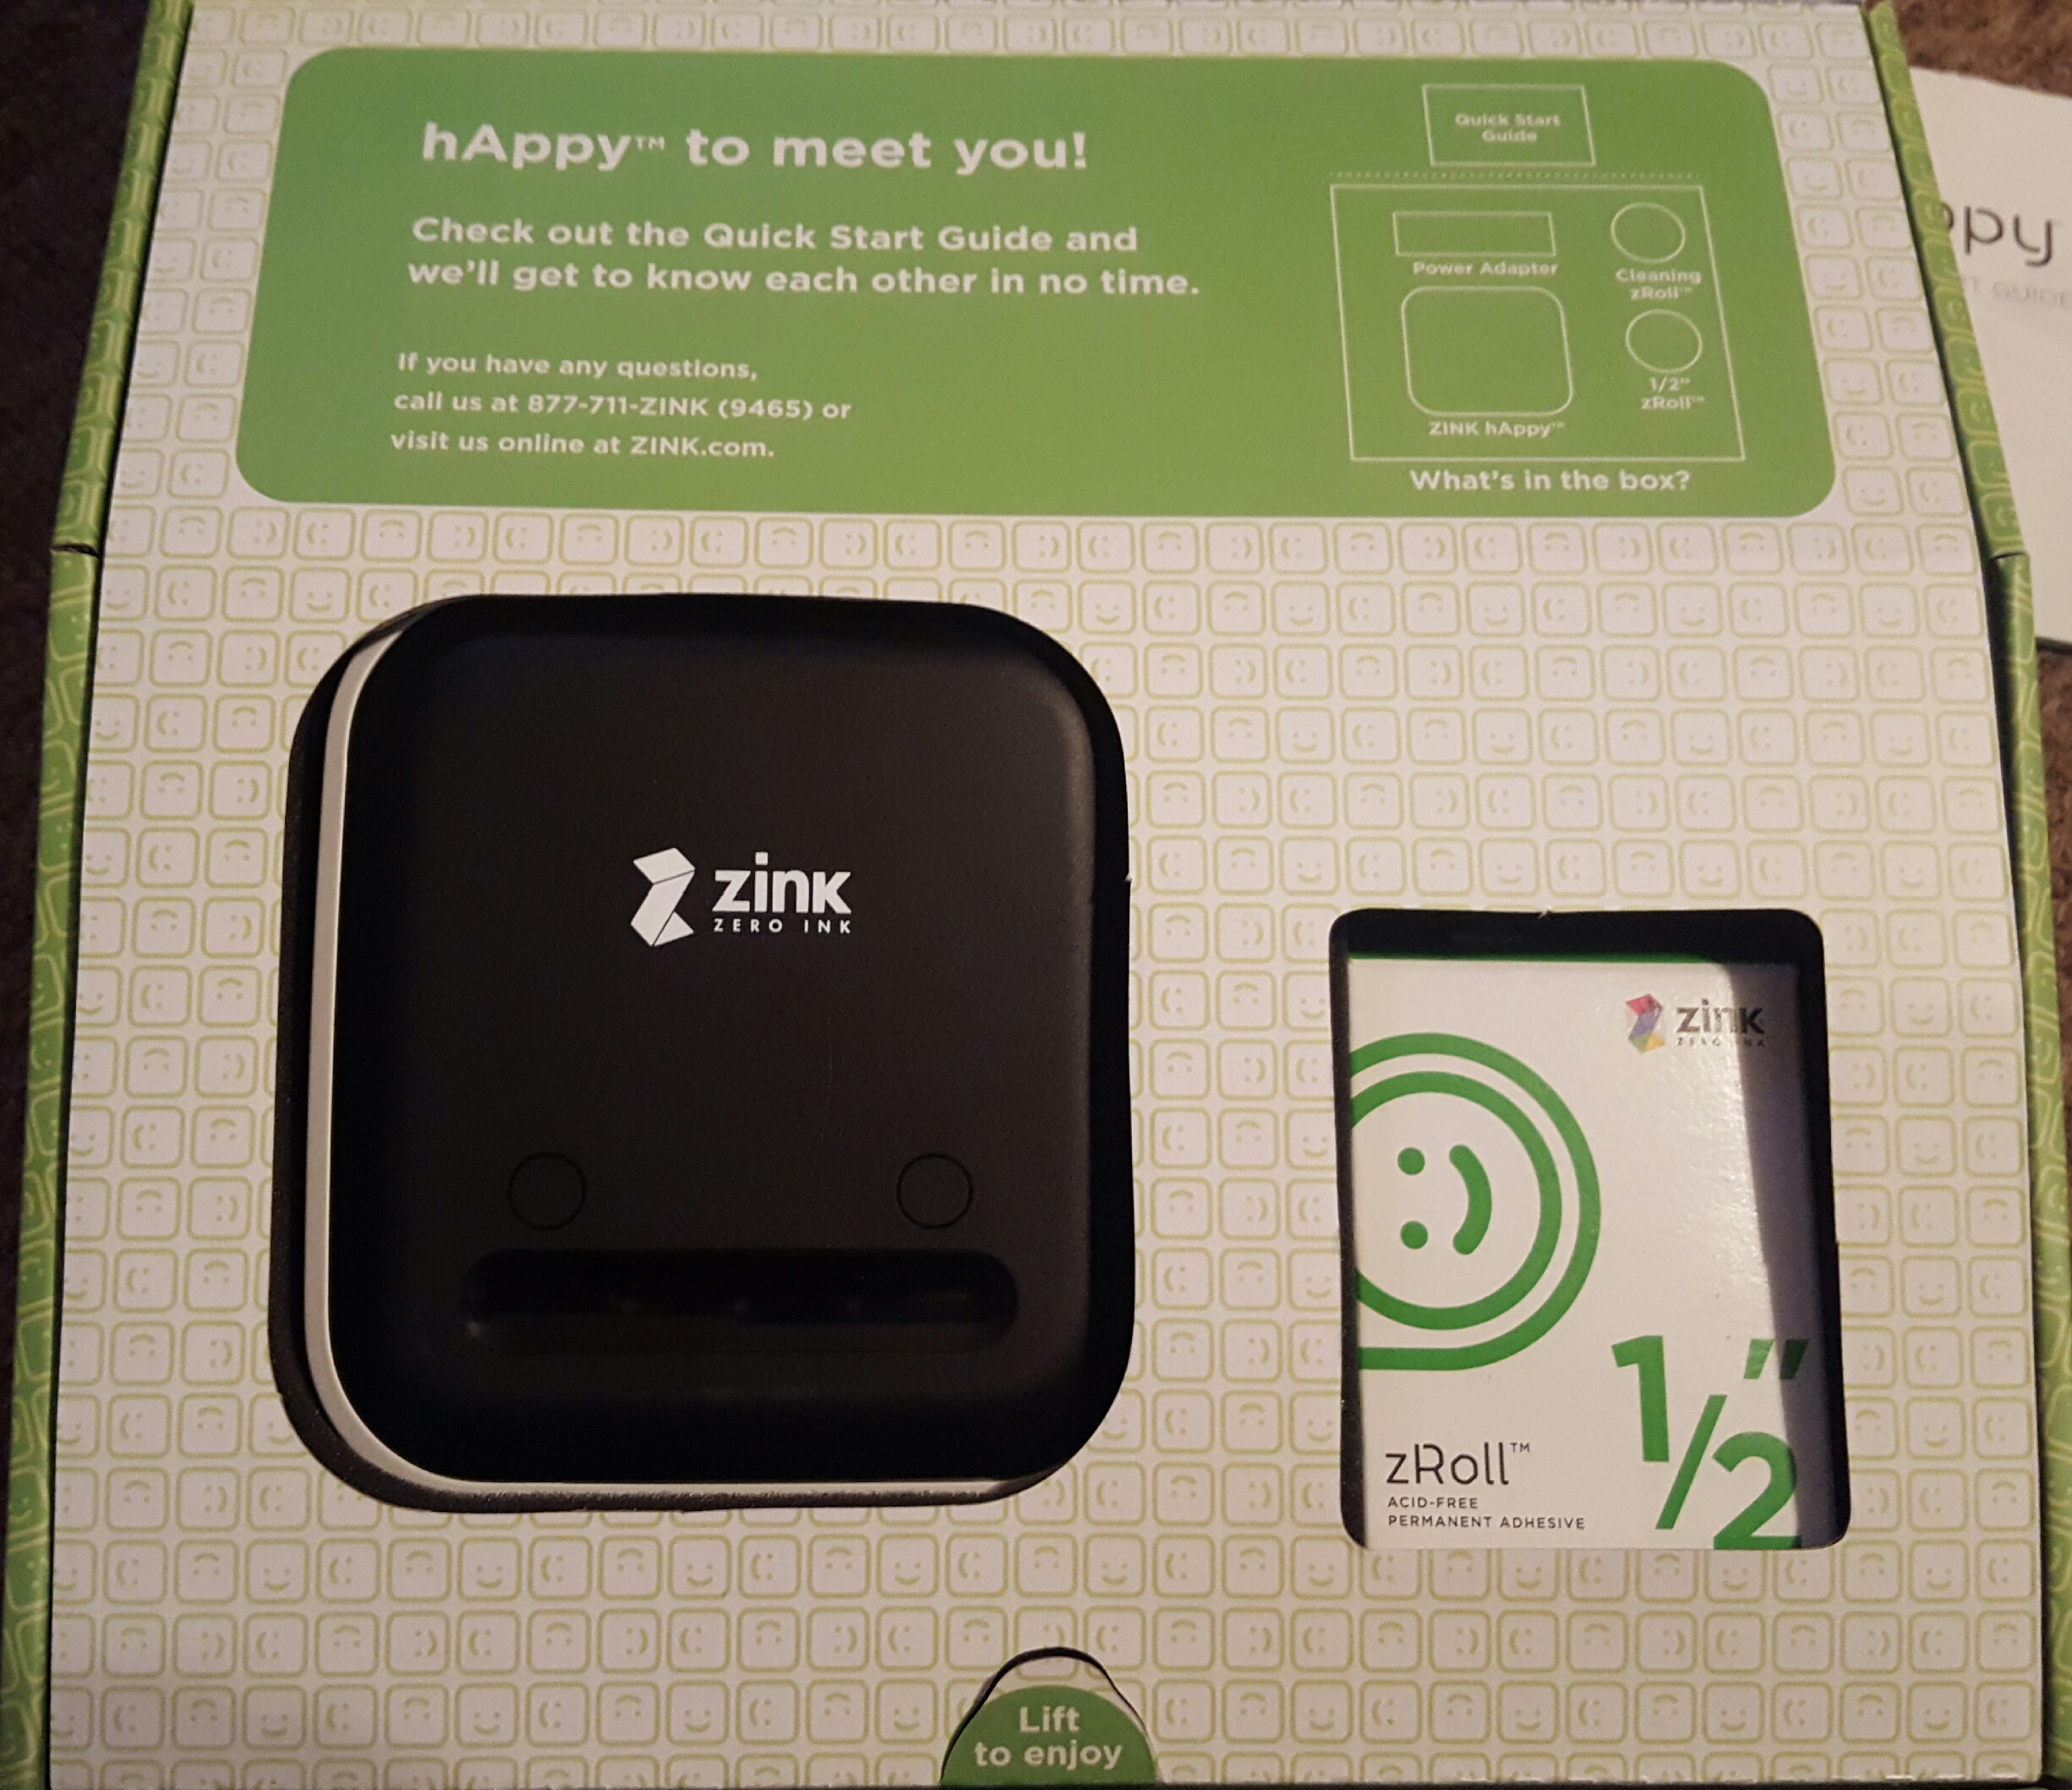 ZINK hAppy Wireless Printer